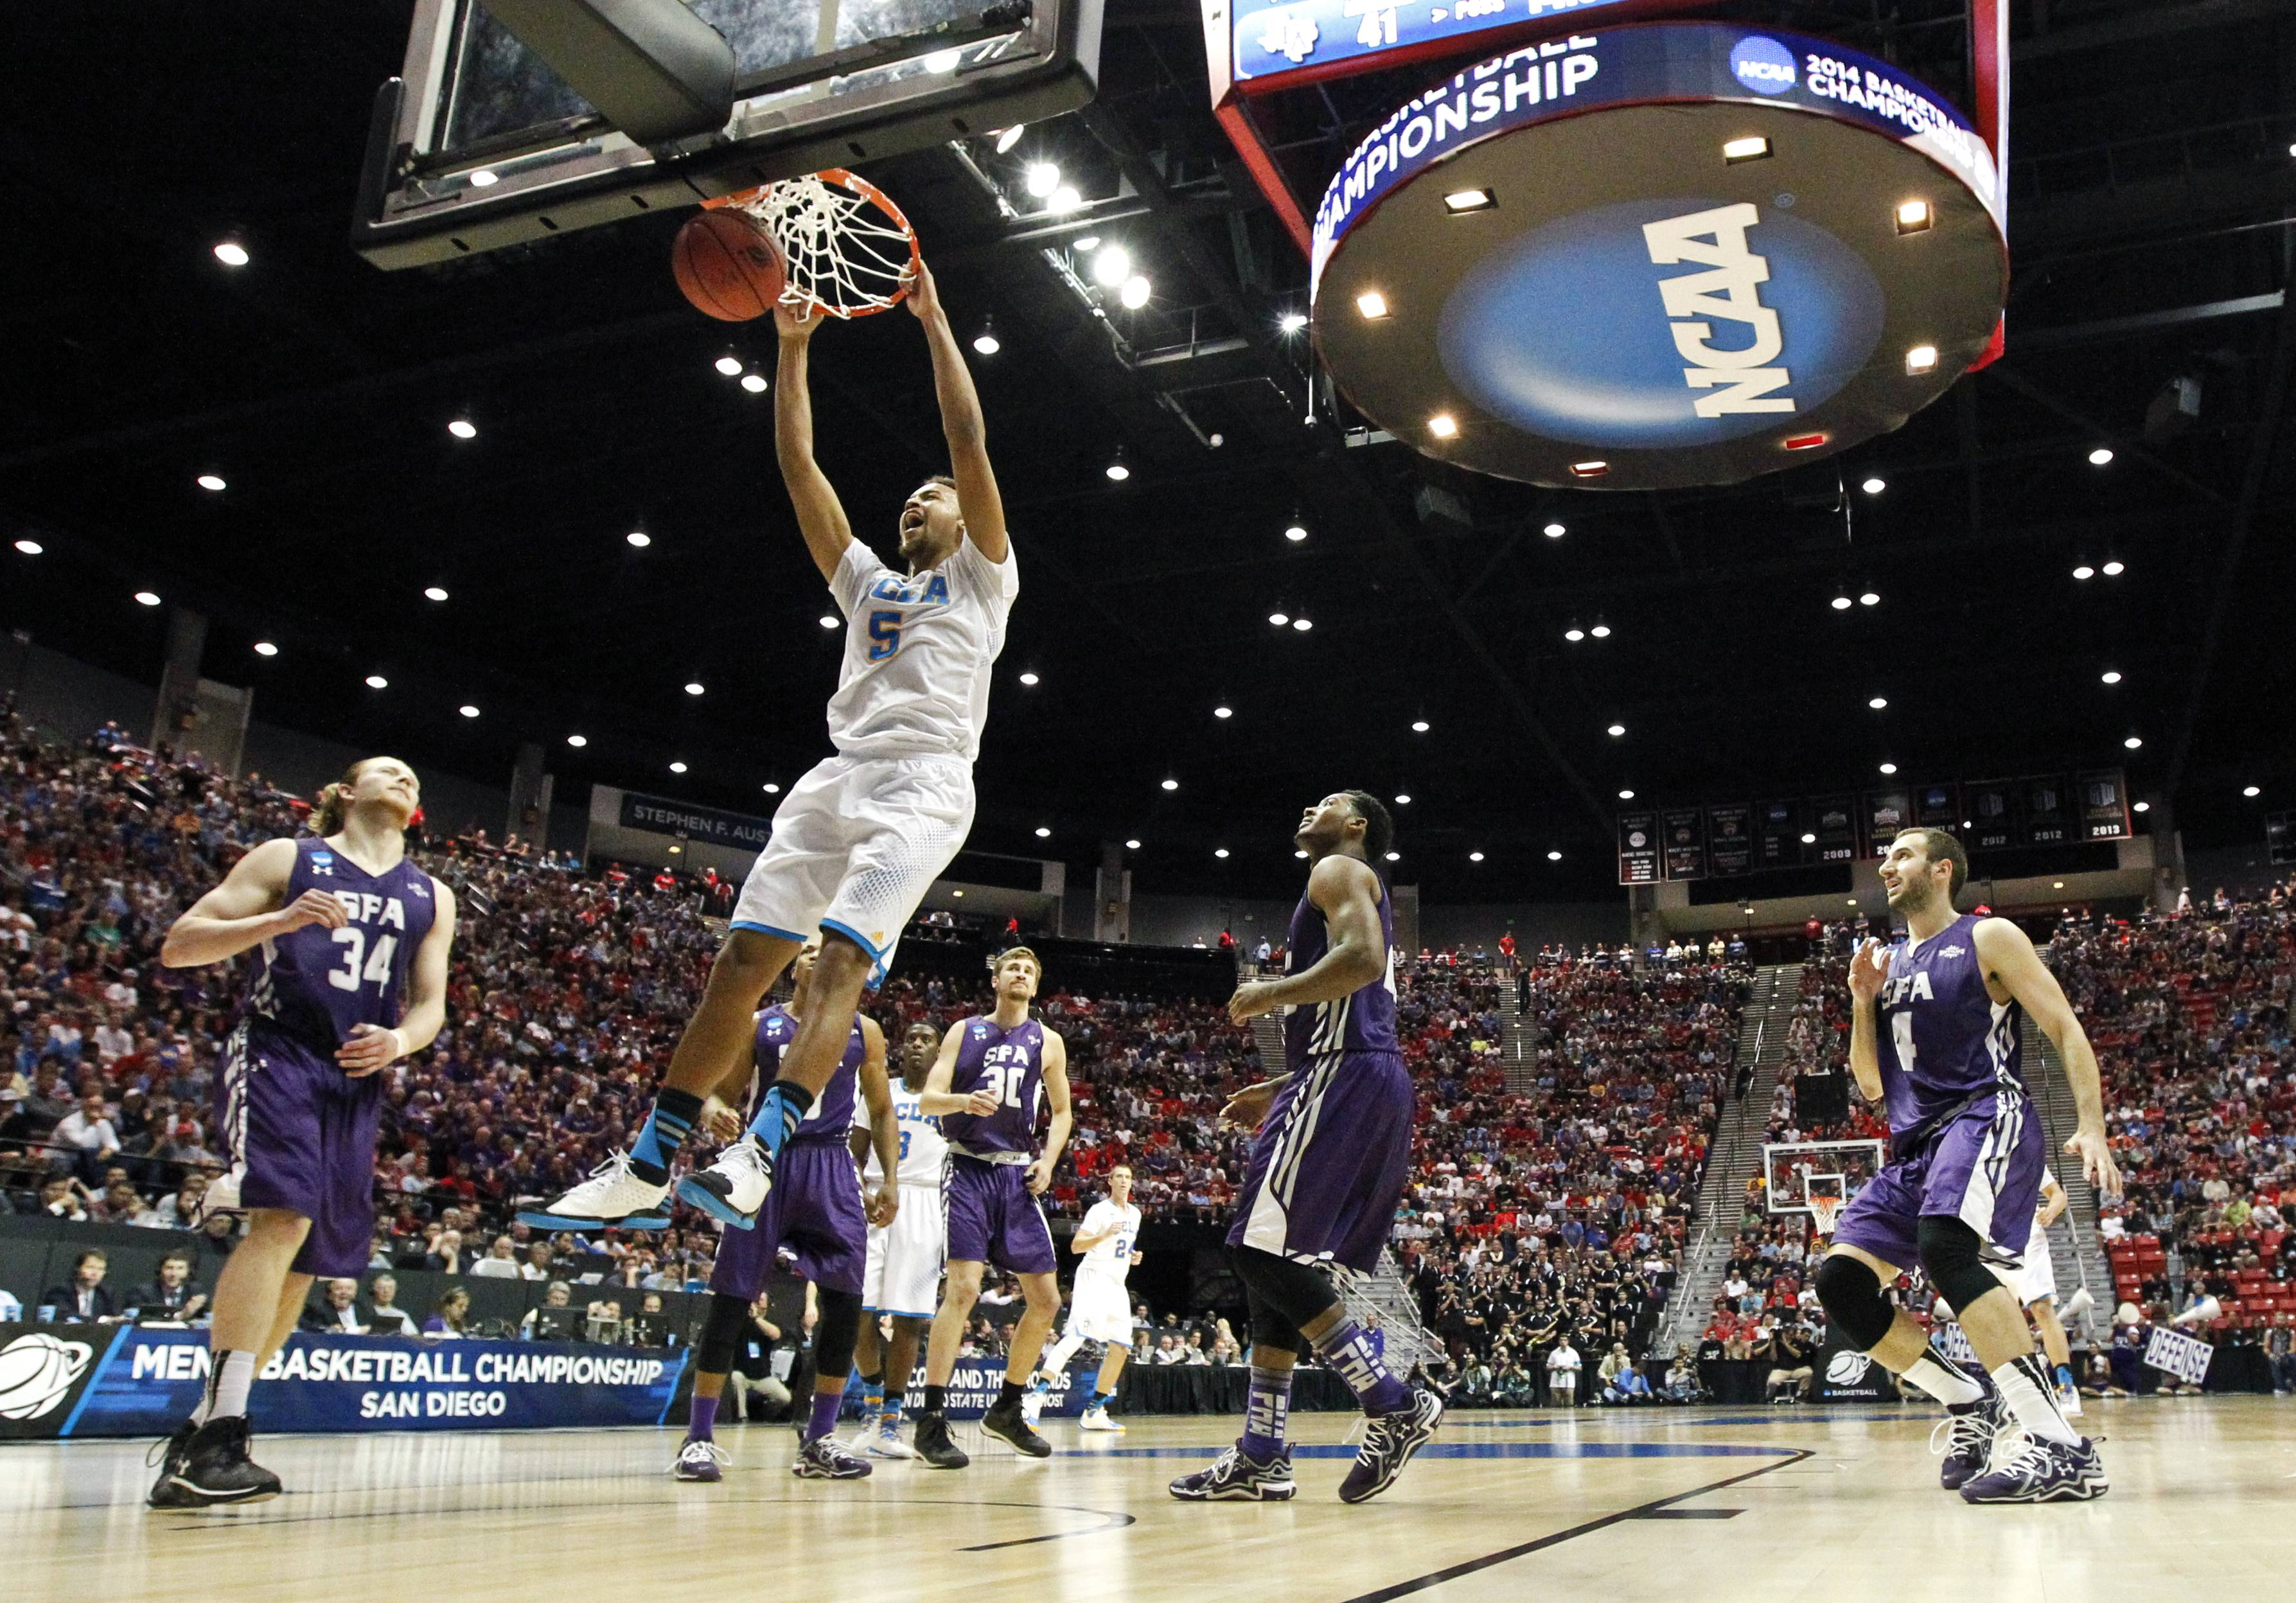 UCLA guard Kyle Anderson slams home a dunk as UCLA pulls away from Stephen F. Austin during the second half of a third-round game in the NCAA college basketball tournament, Sunday, March 23, 2014, in San Diego.